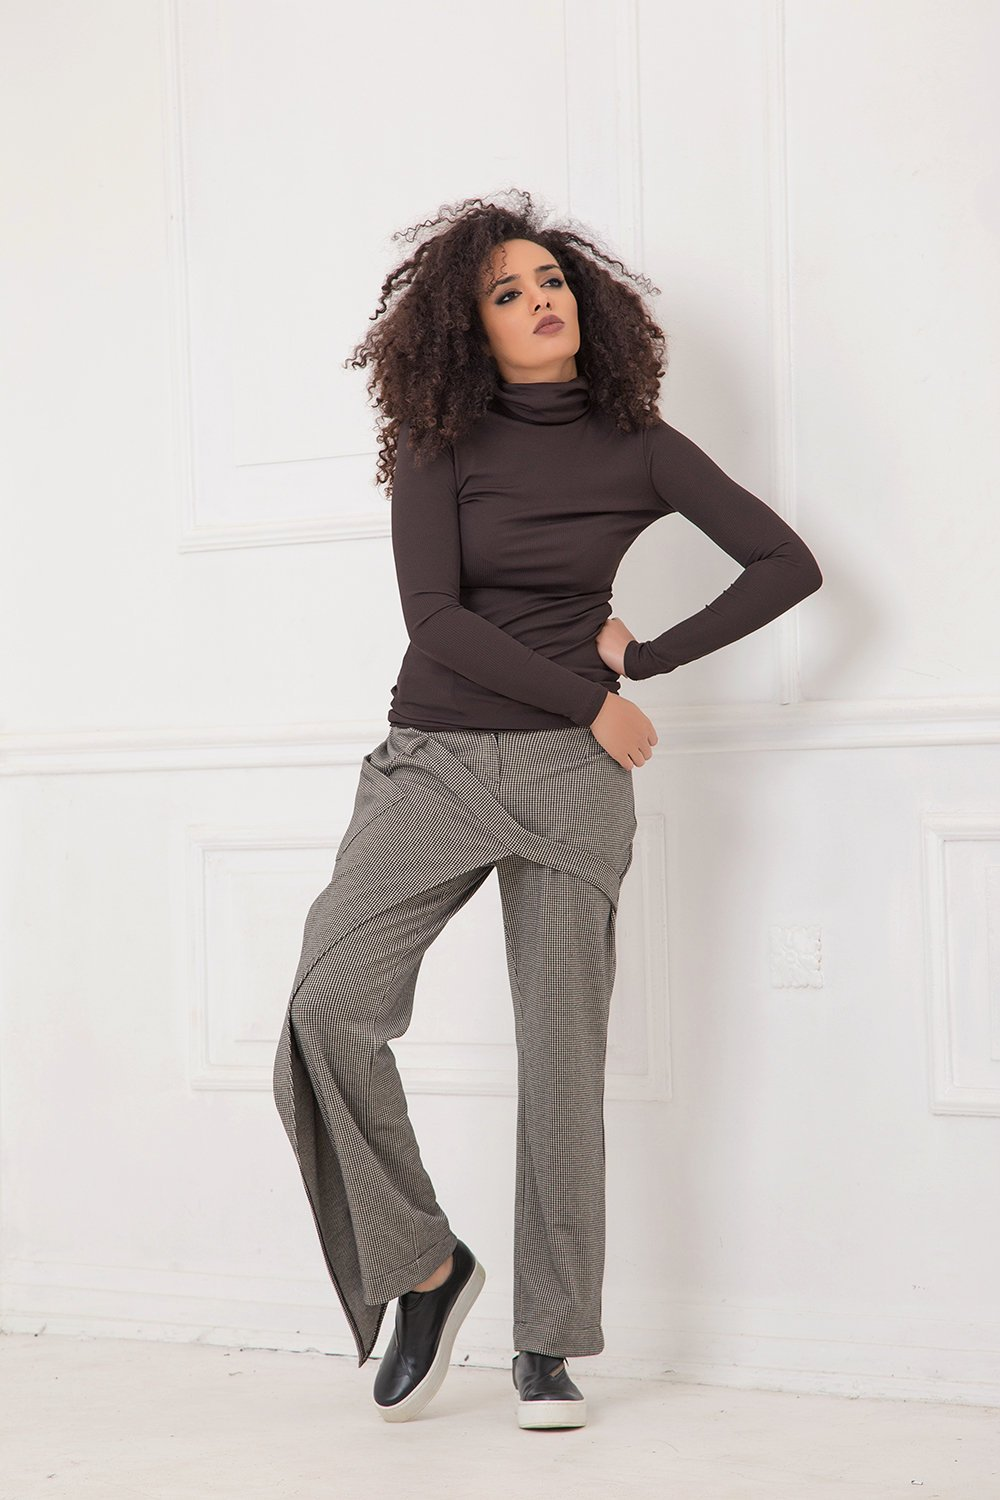 Pants For Women, Gray Pants, Plus Size Clothing, Extravagant Pants, Formal Pants, Woman Trousers, Cotton Pants, Winter Pants, Gray Trousers